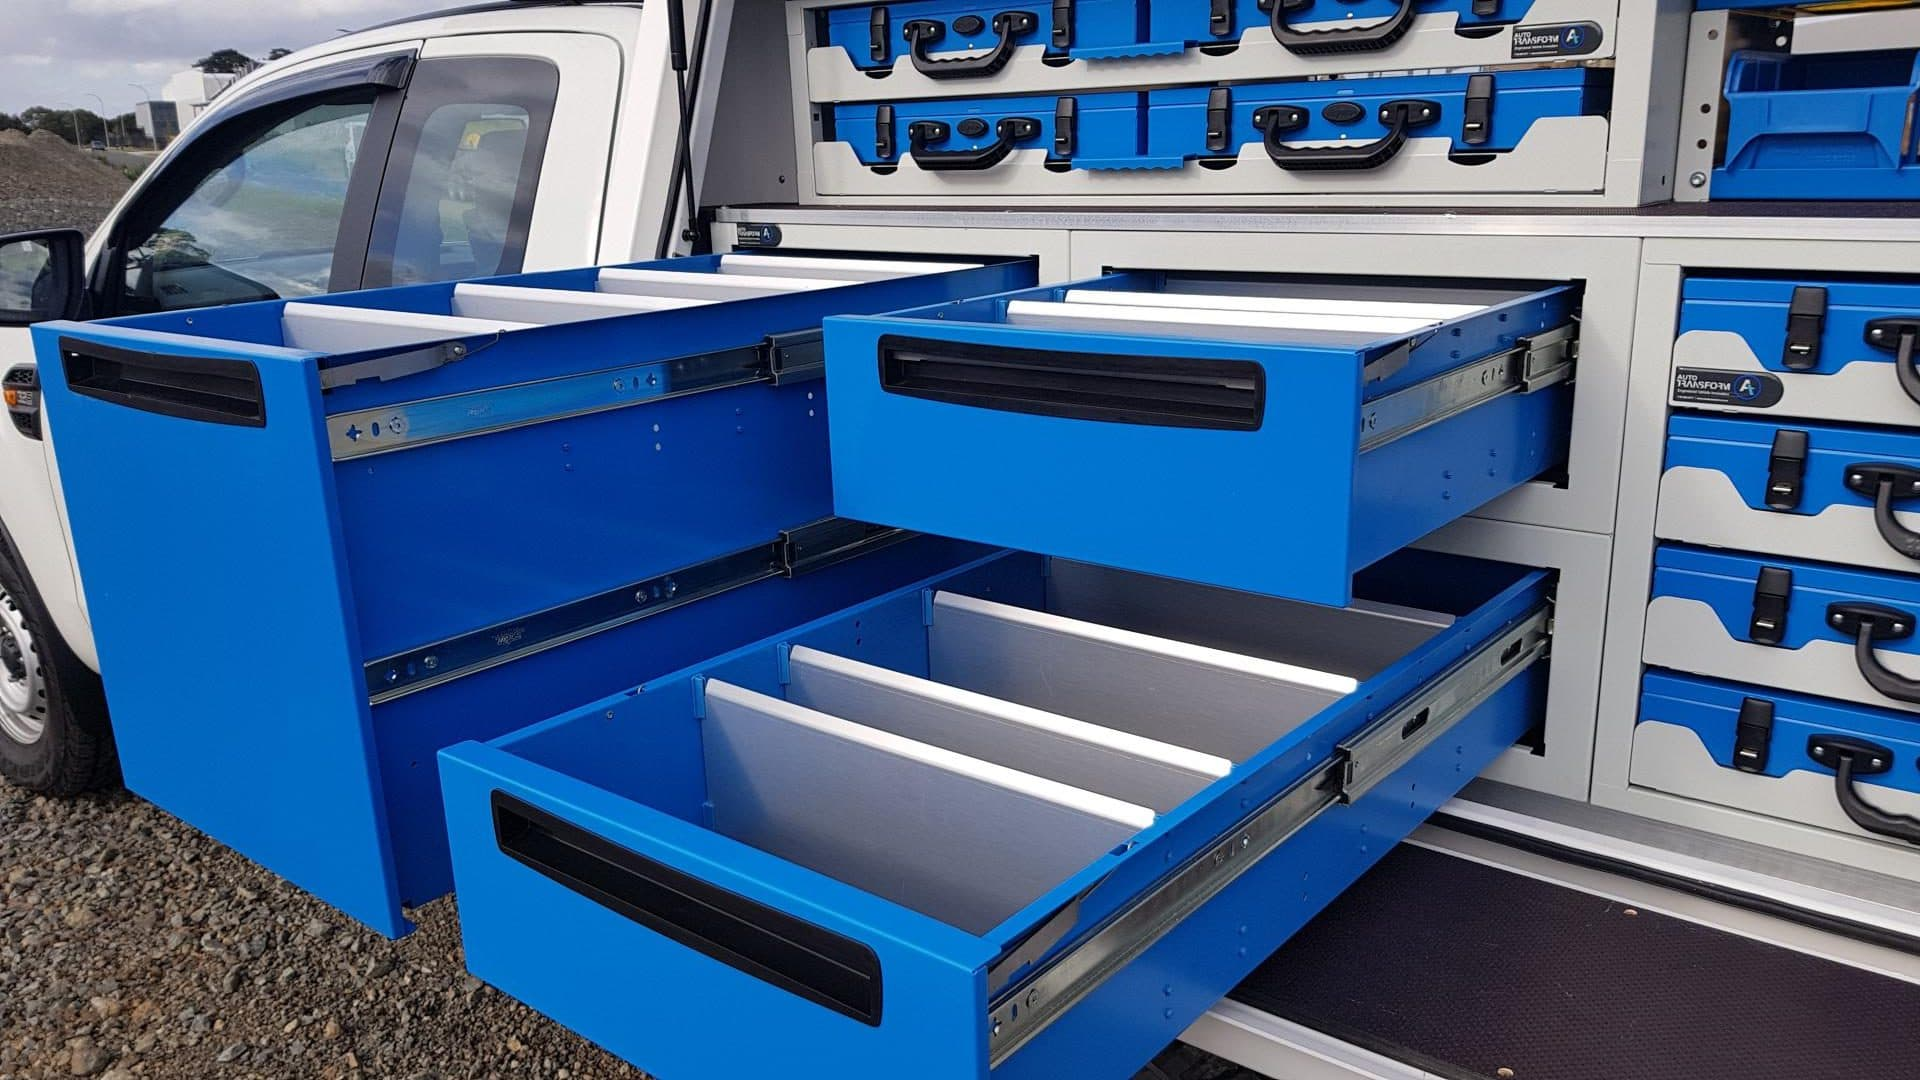 Modular tool drawer system for ute service body